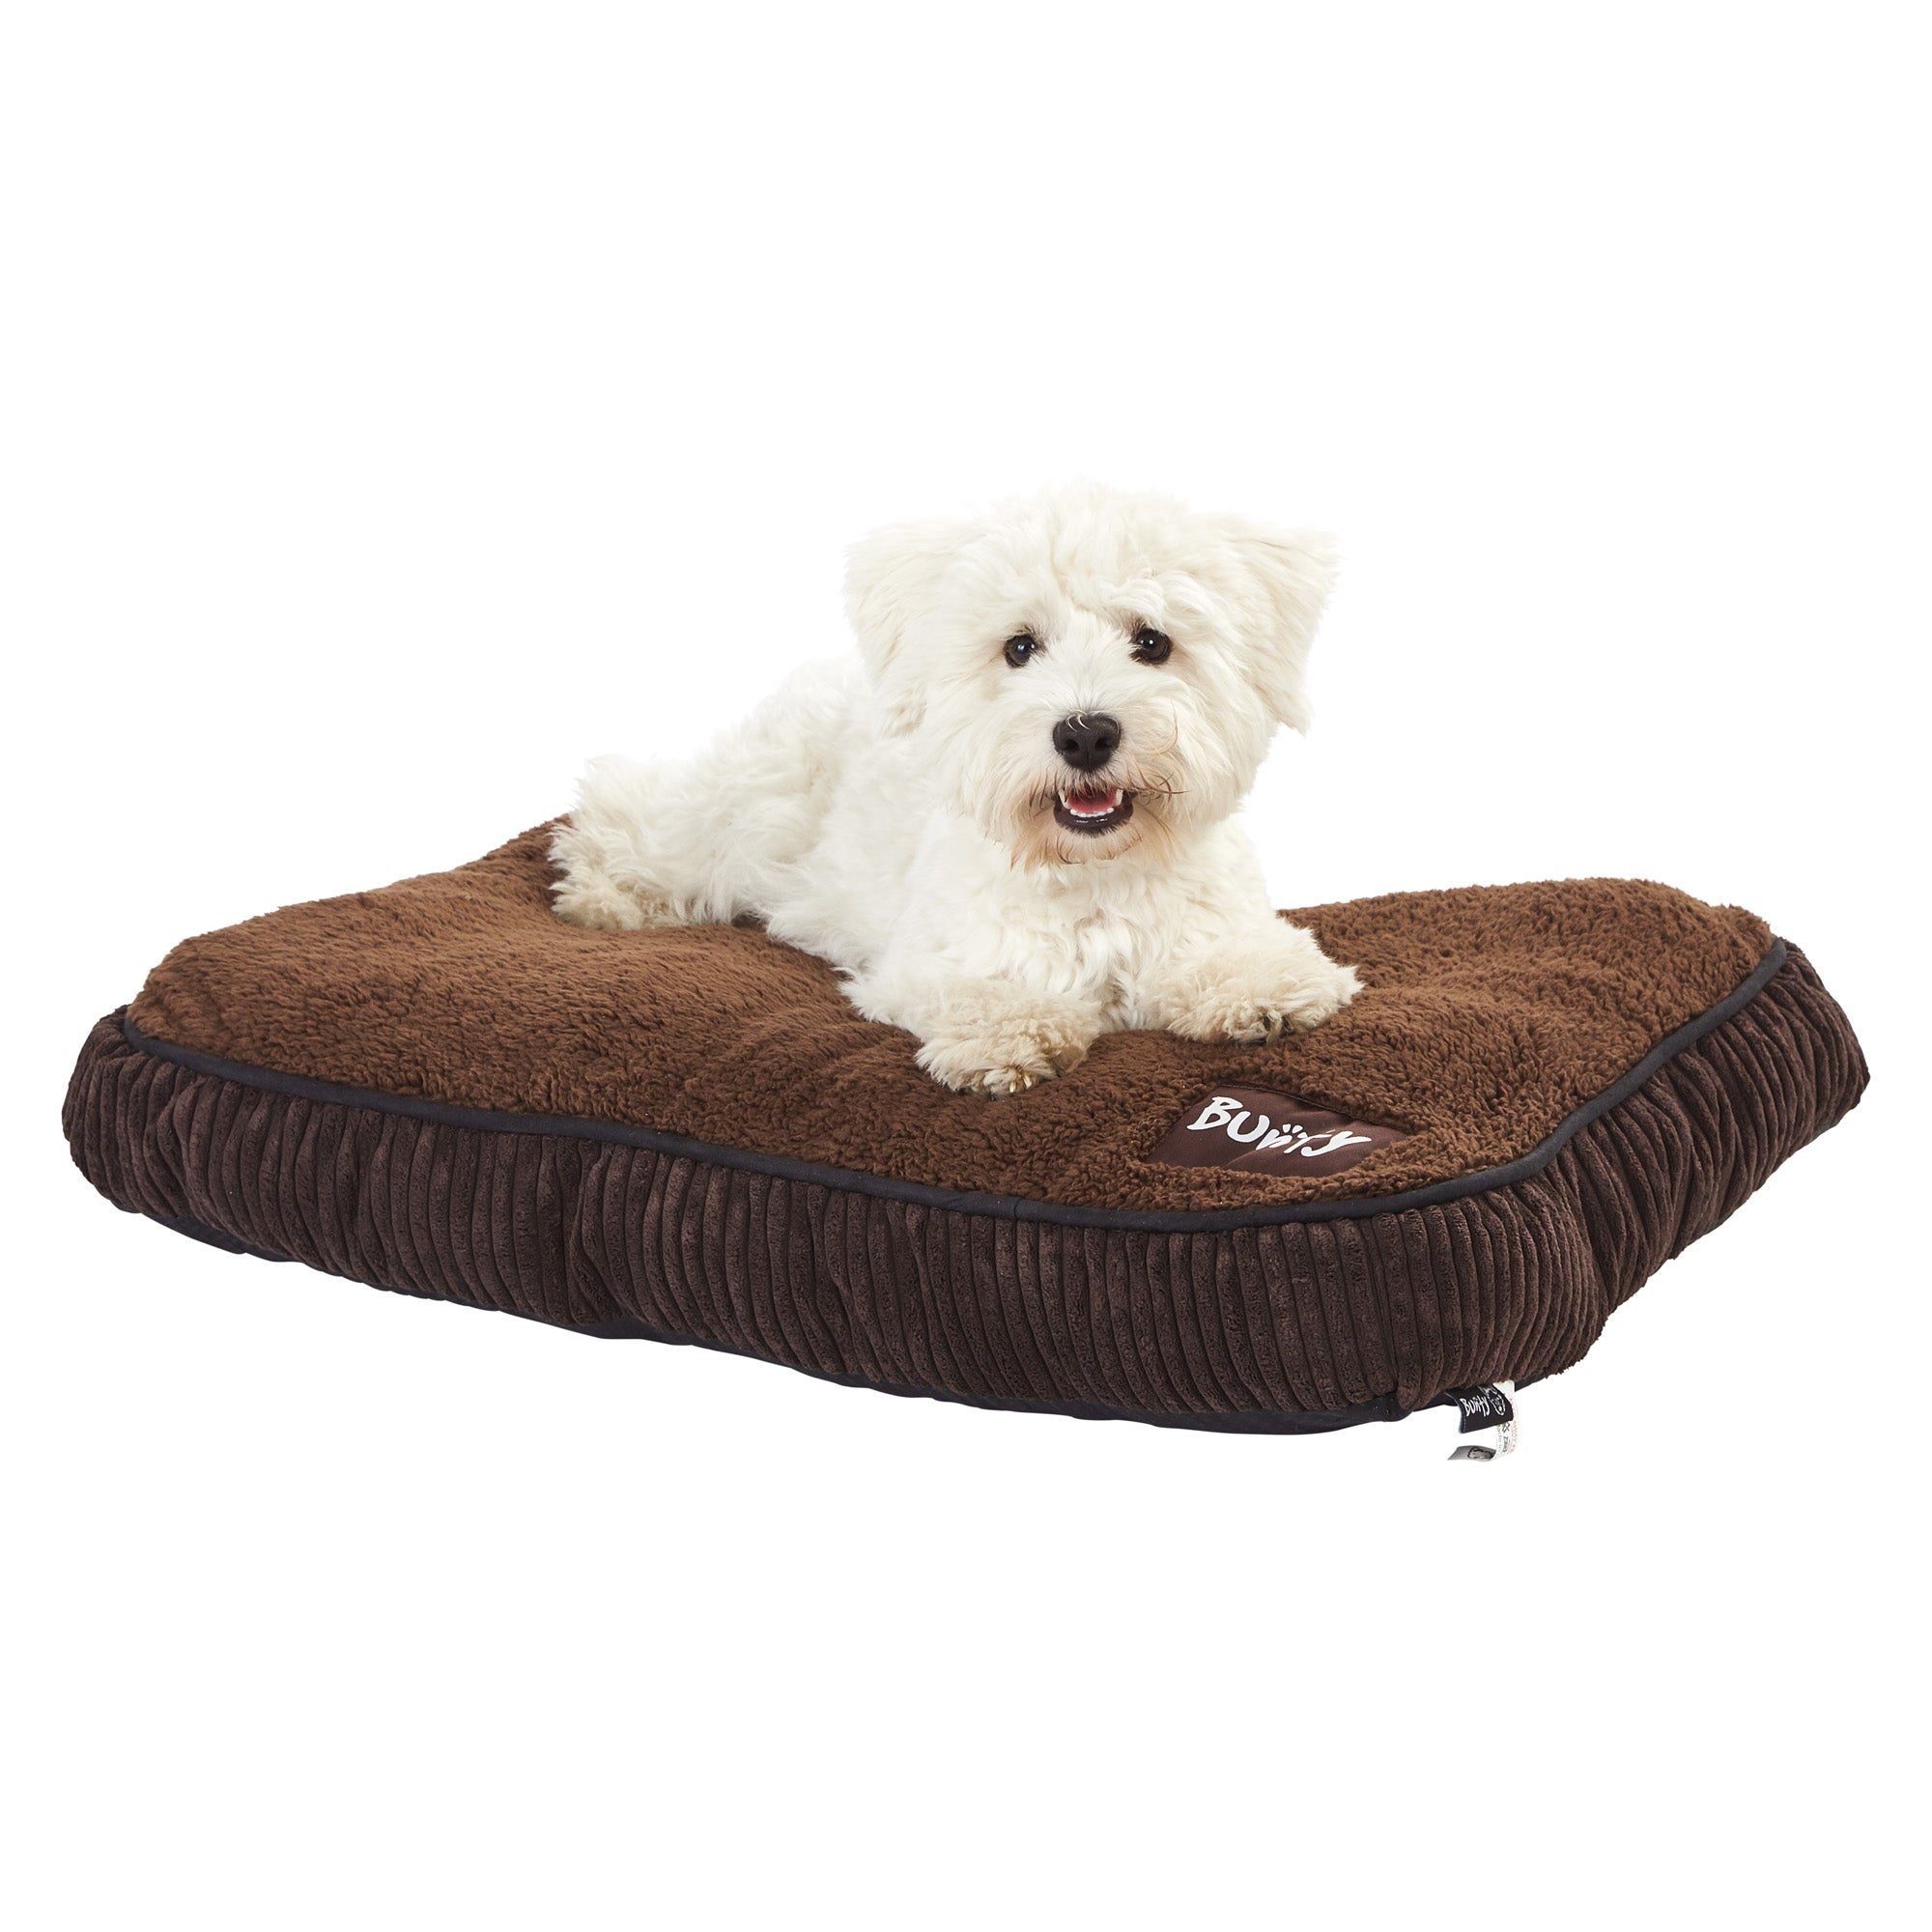 Bunty Snooze Dog Bed Brown